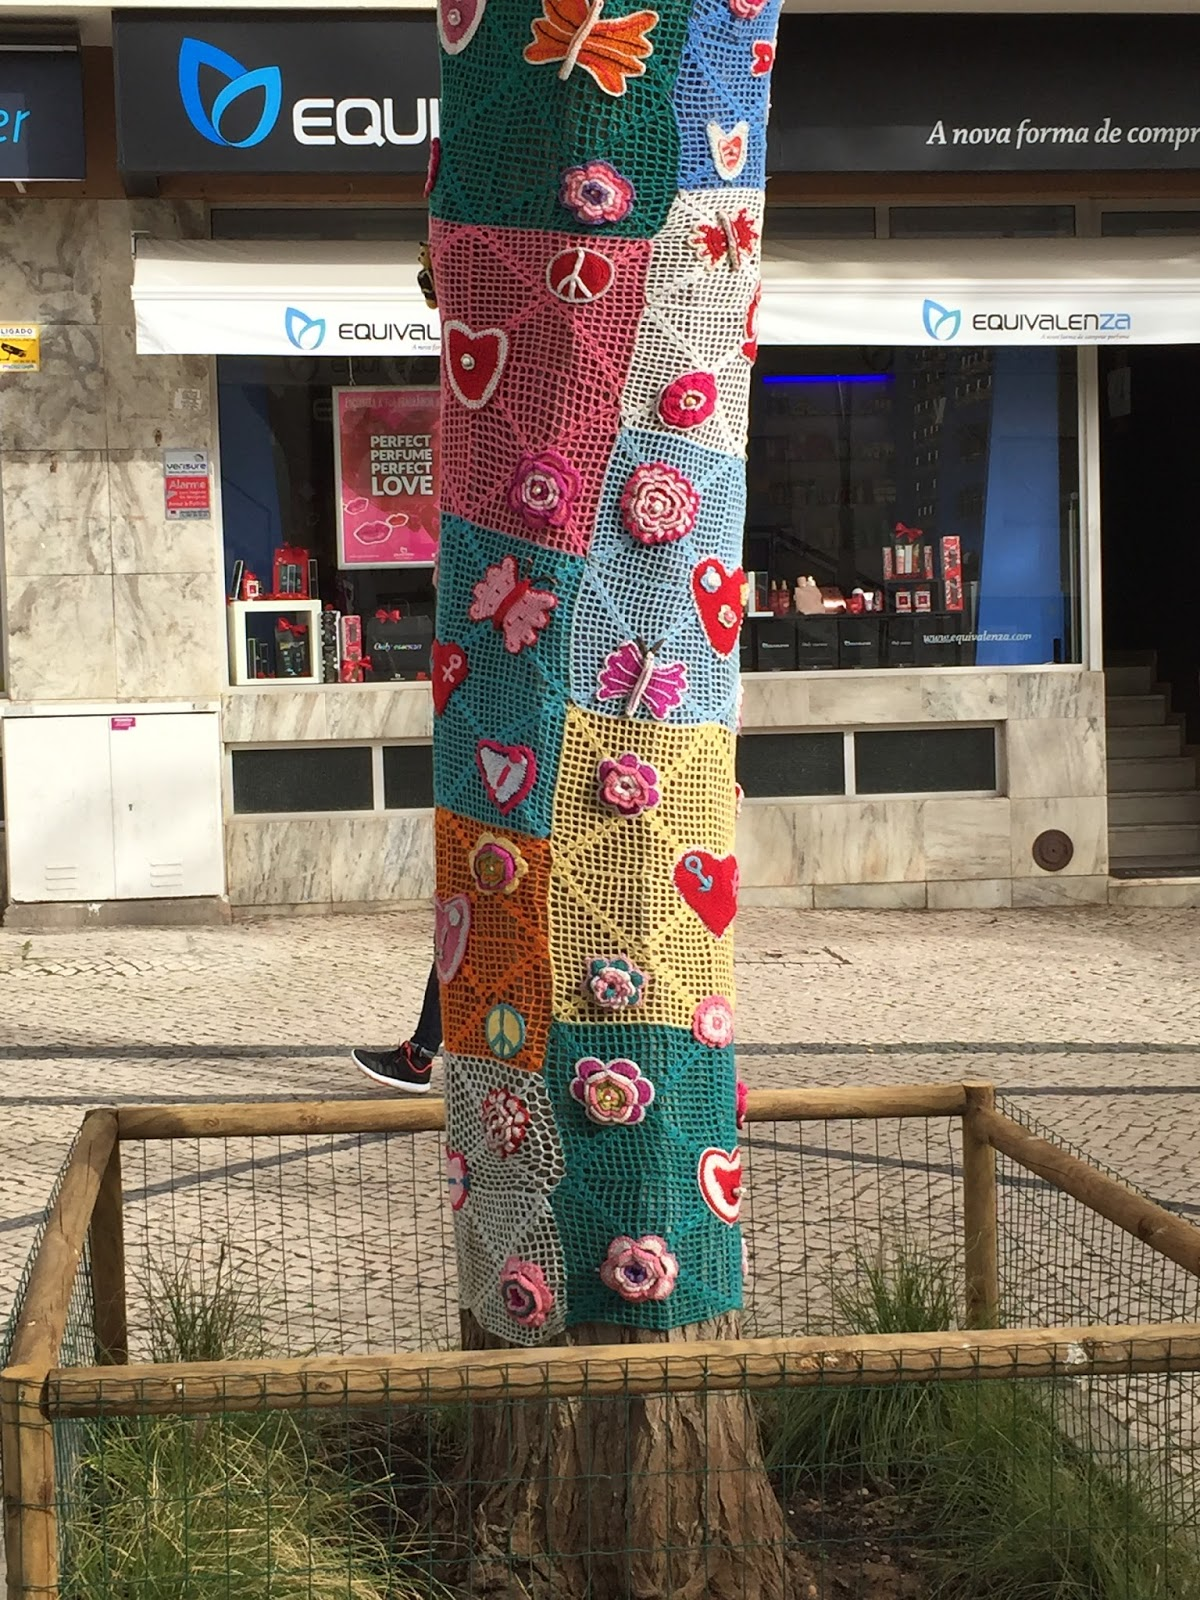 Lost in the past: Guerilla Knitting in The Algarve #WordlessWednesday